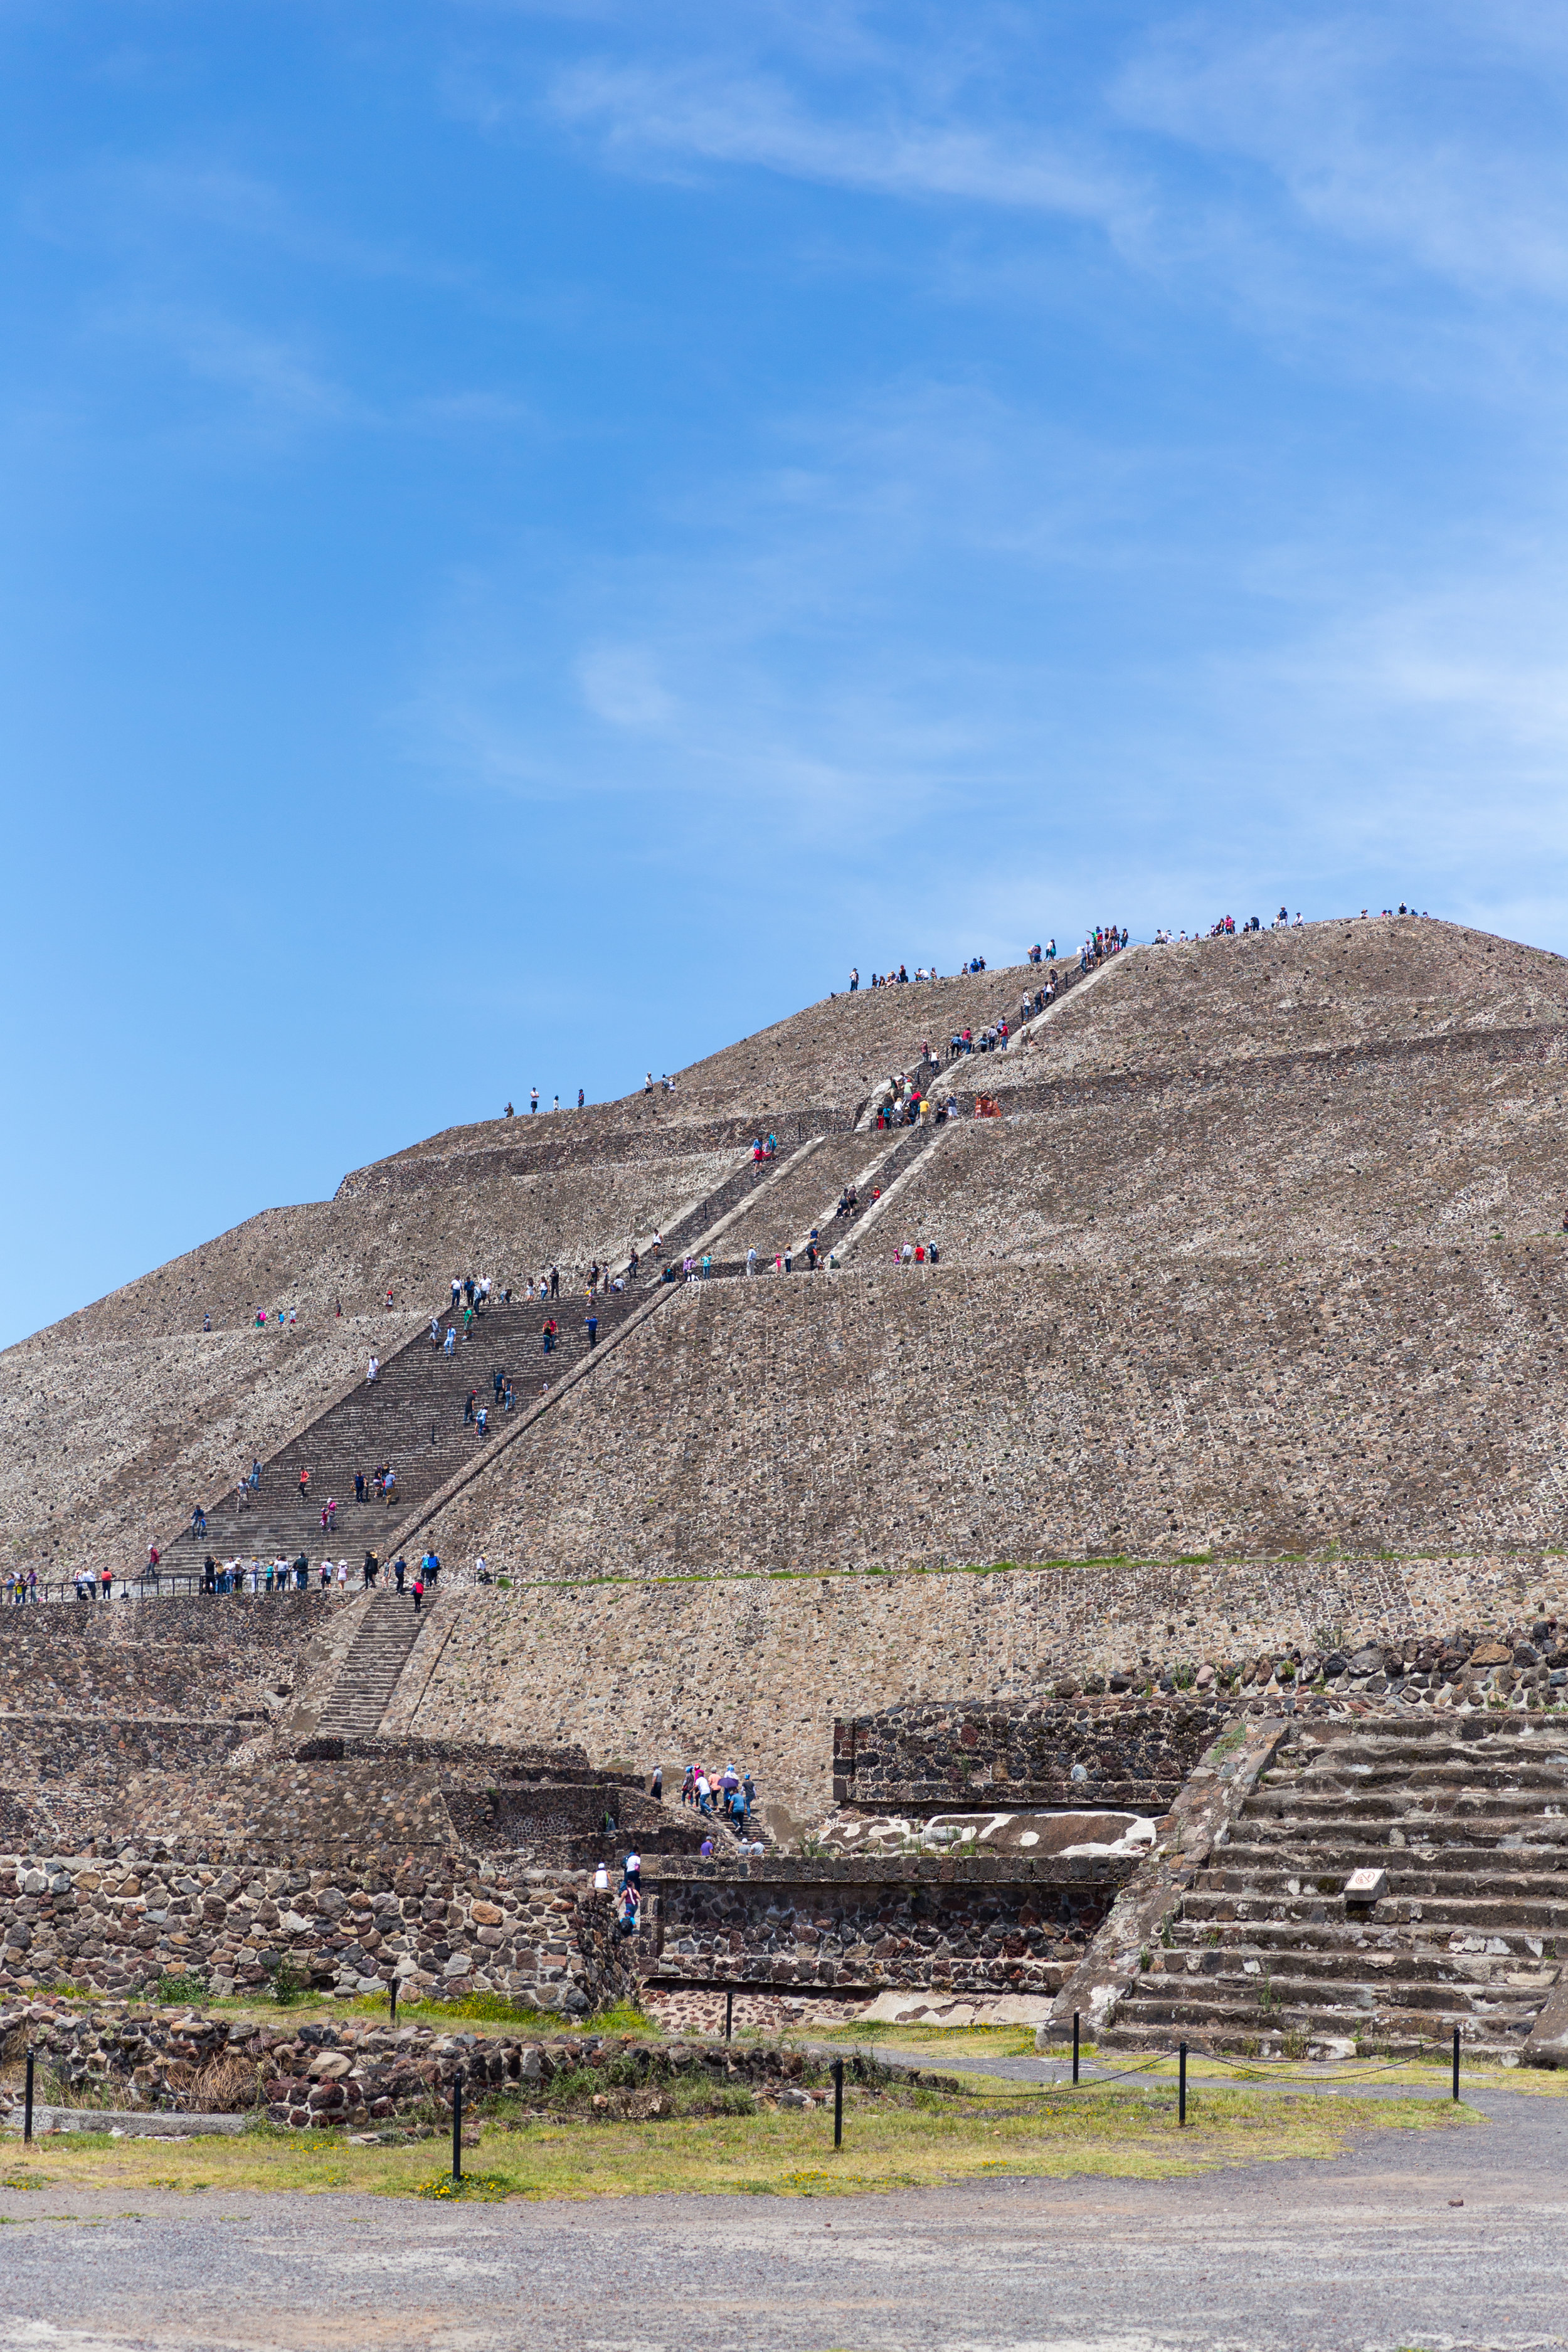 Mexico City Teotihuacan-5.jpg